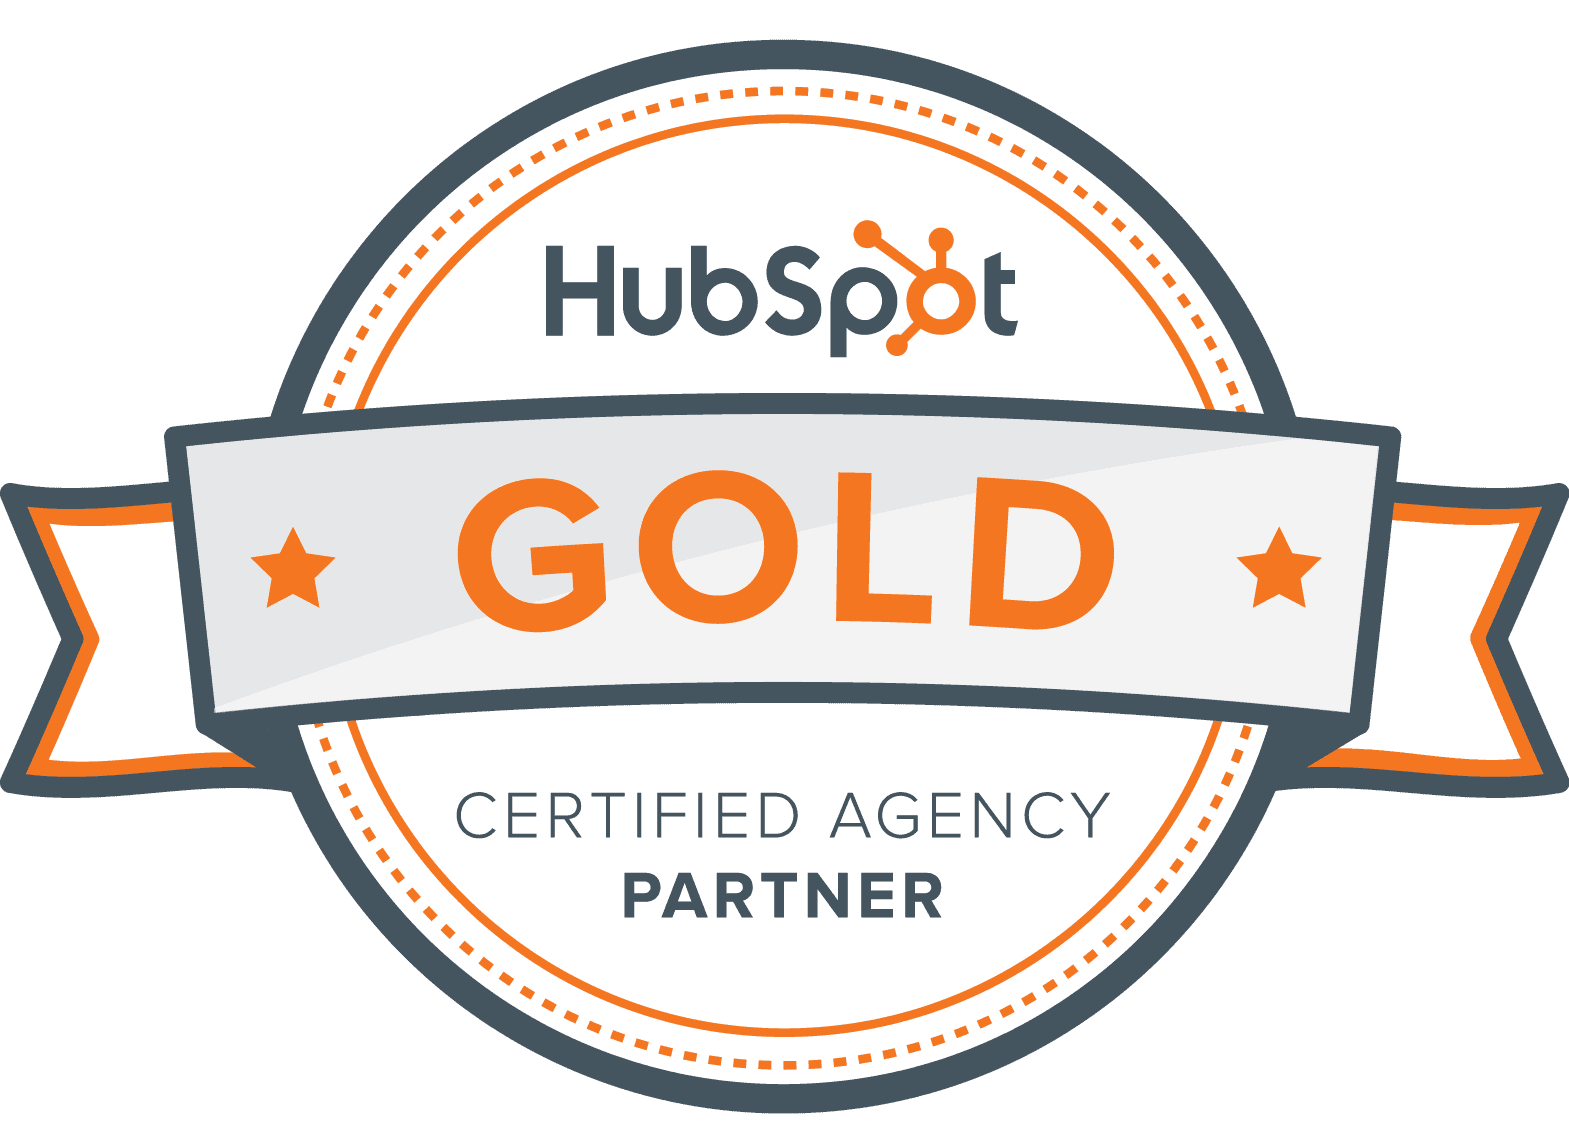 Edinburgh HubSpot Gold Partner Agency - Bundle Digital